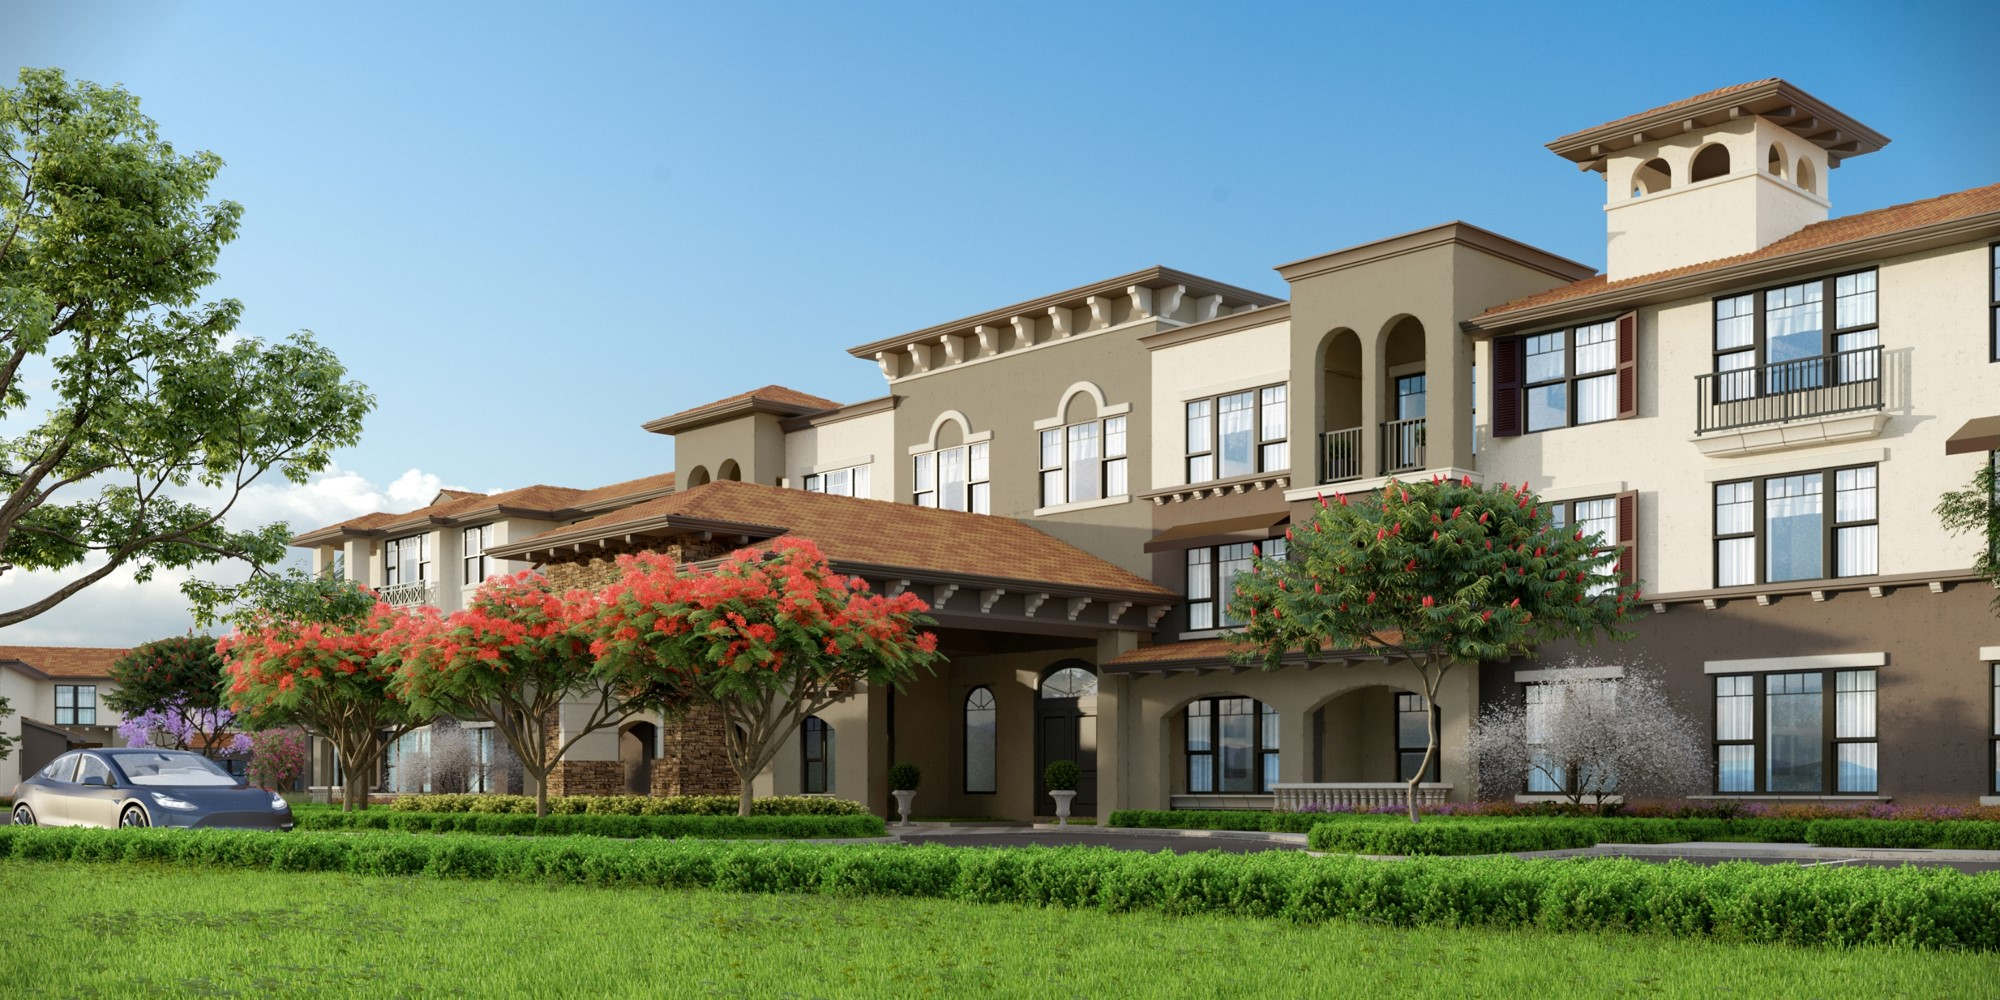 Senior facility approved for Carlsbad